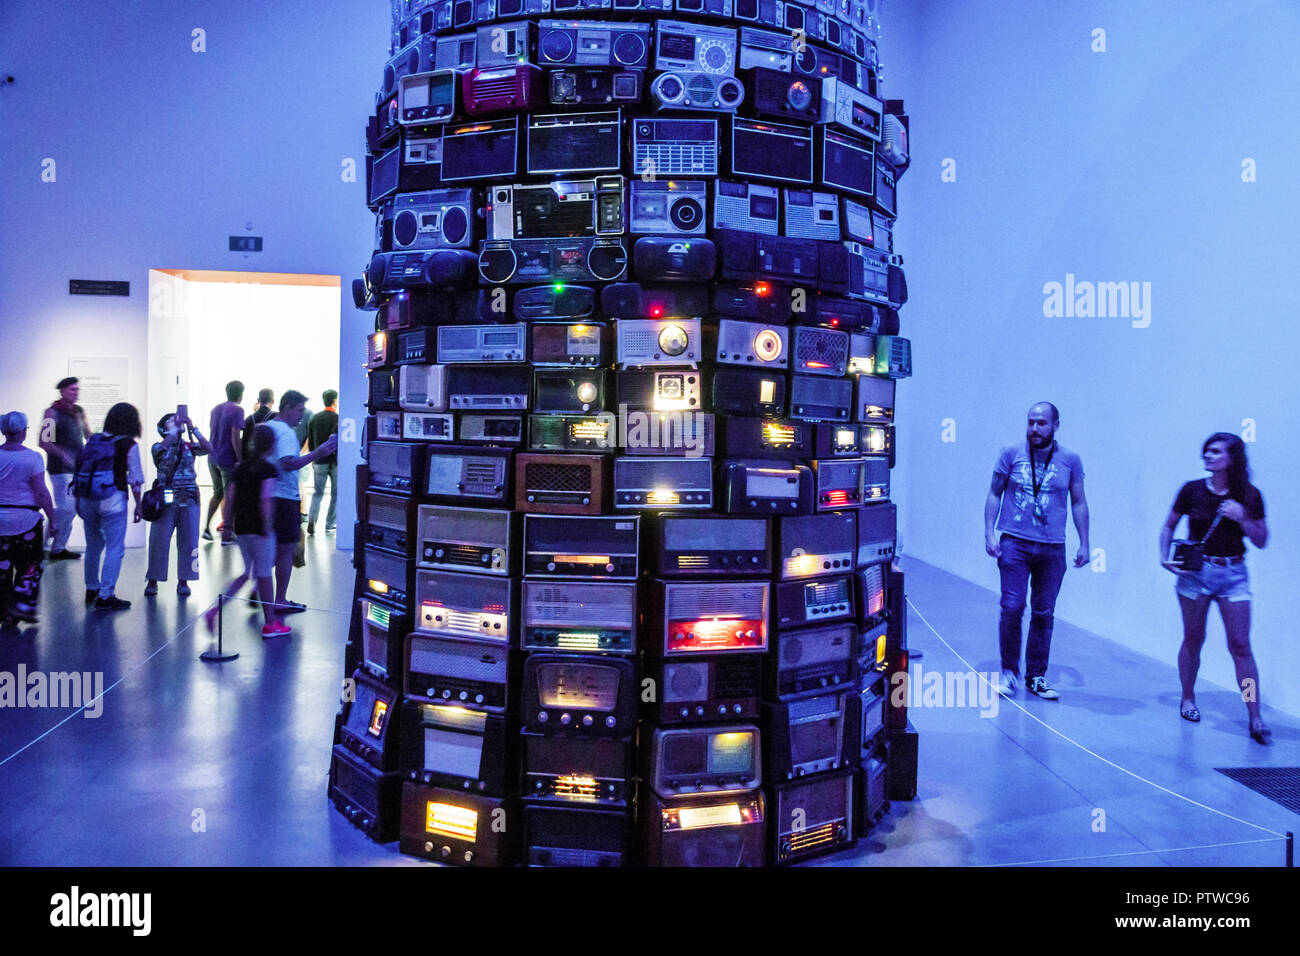 La Chambre Bleue Pelicula Babel Looking Photos Babel Looking Images Alamy